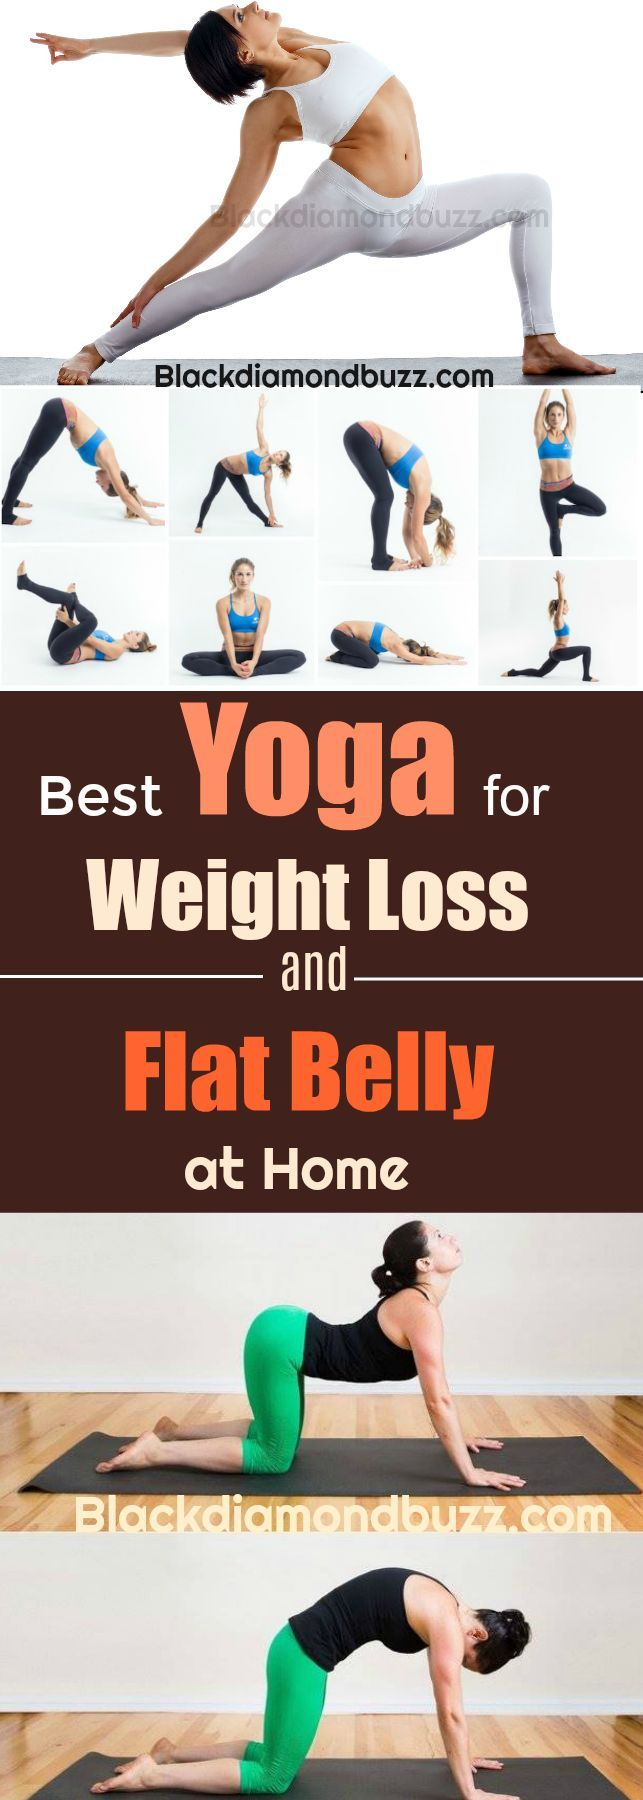 Best  goya exercises for weight loss and belly fat  at home  -These yoga poses burn fat in 10 days.Try it  https://www.blackdiamondbuzz.com/best-yoga-exercises-for-weight-loss/